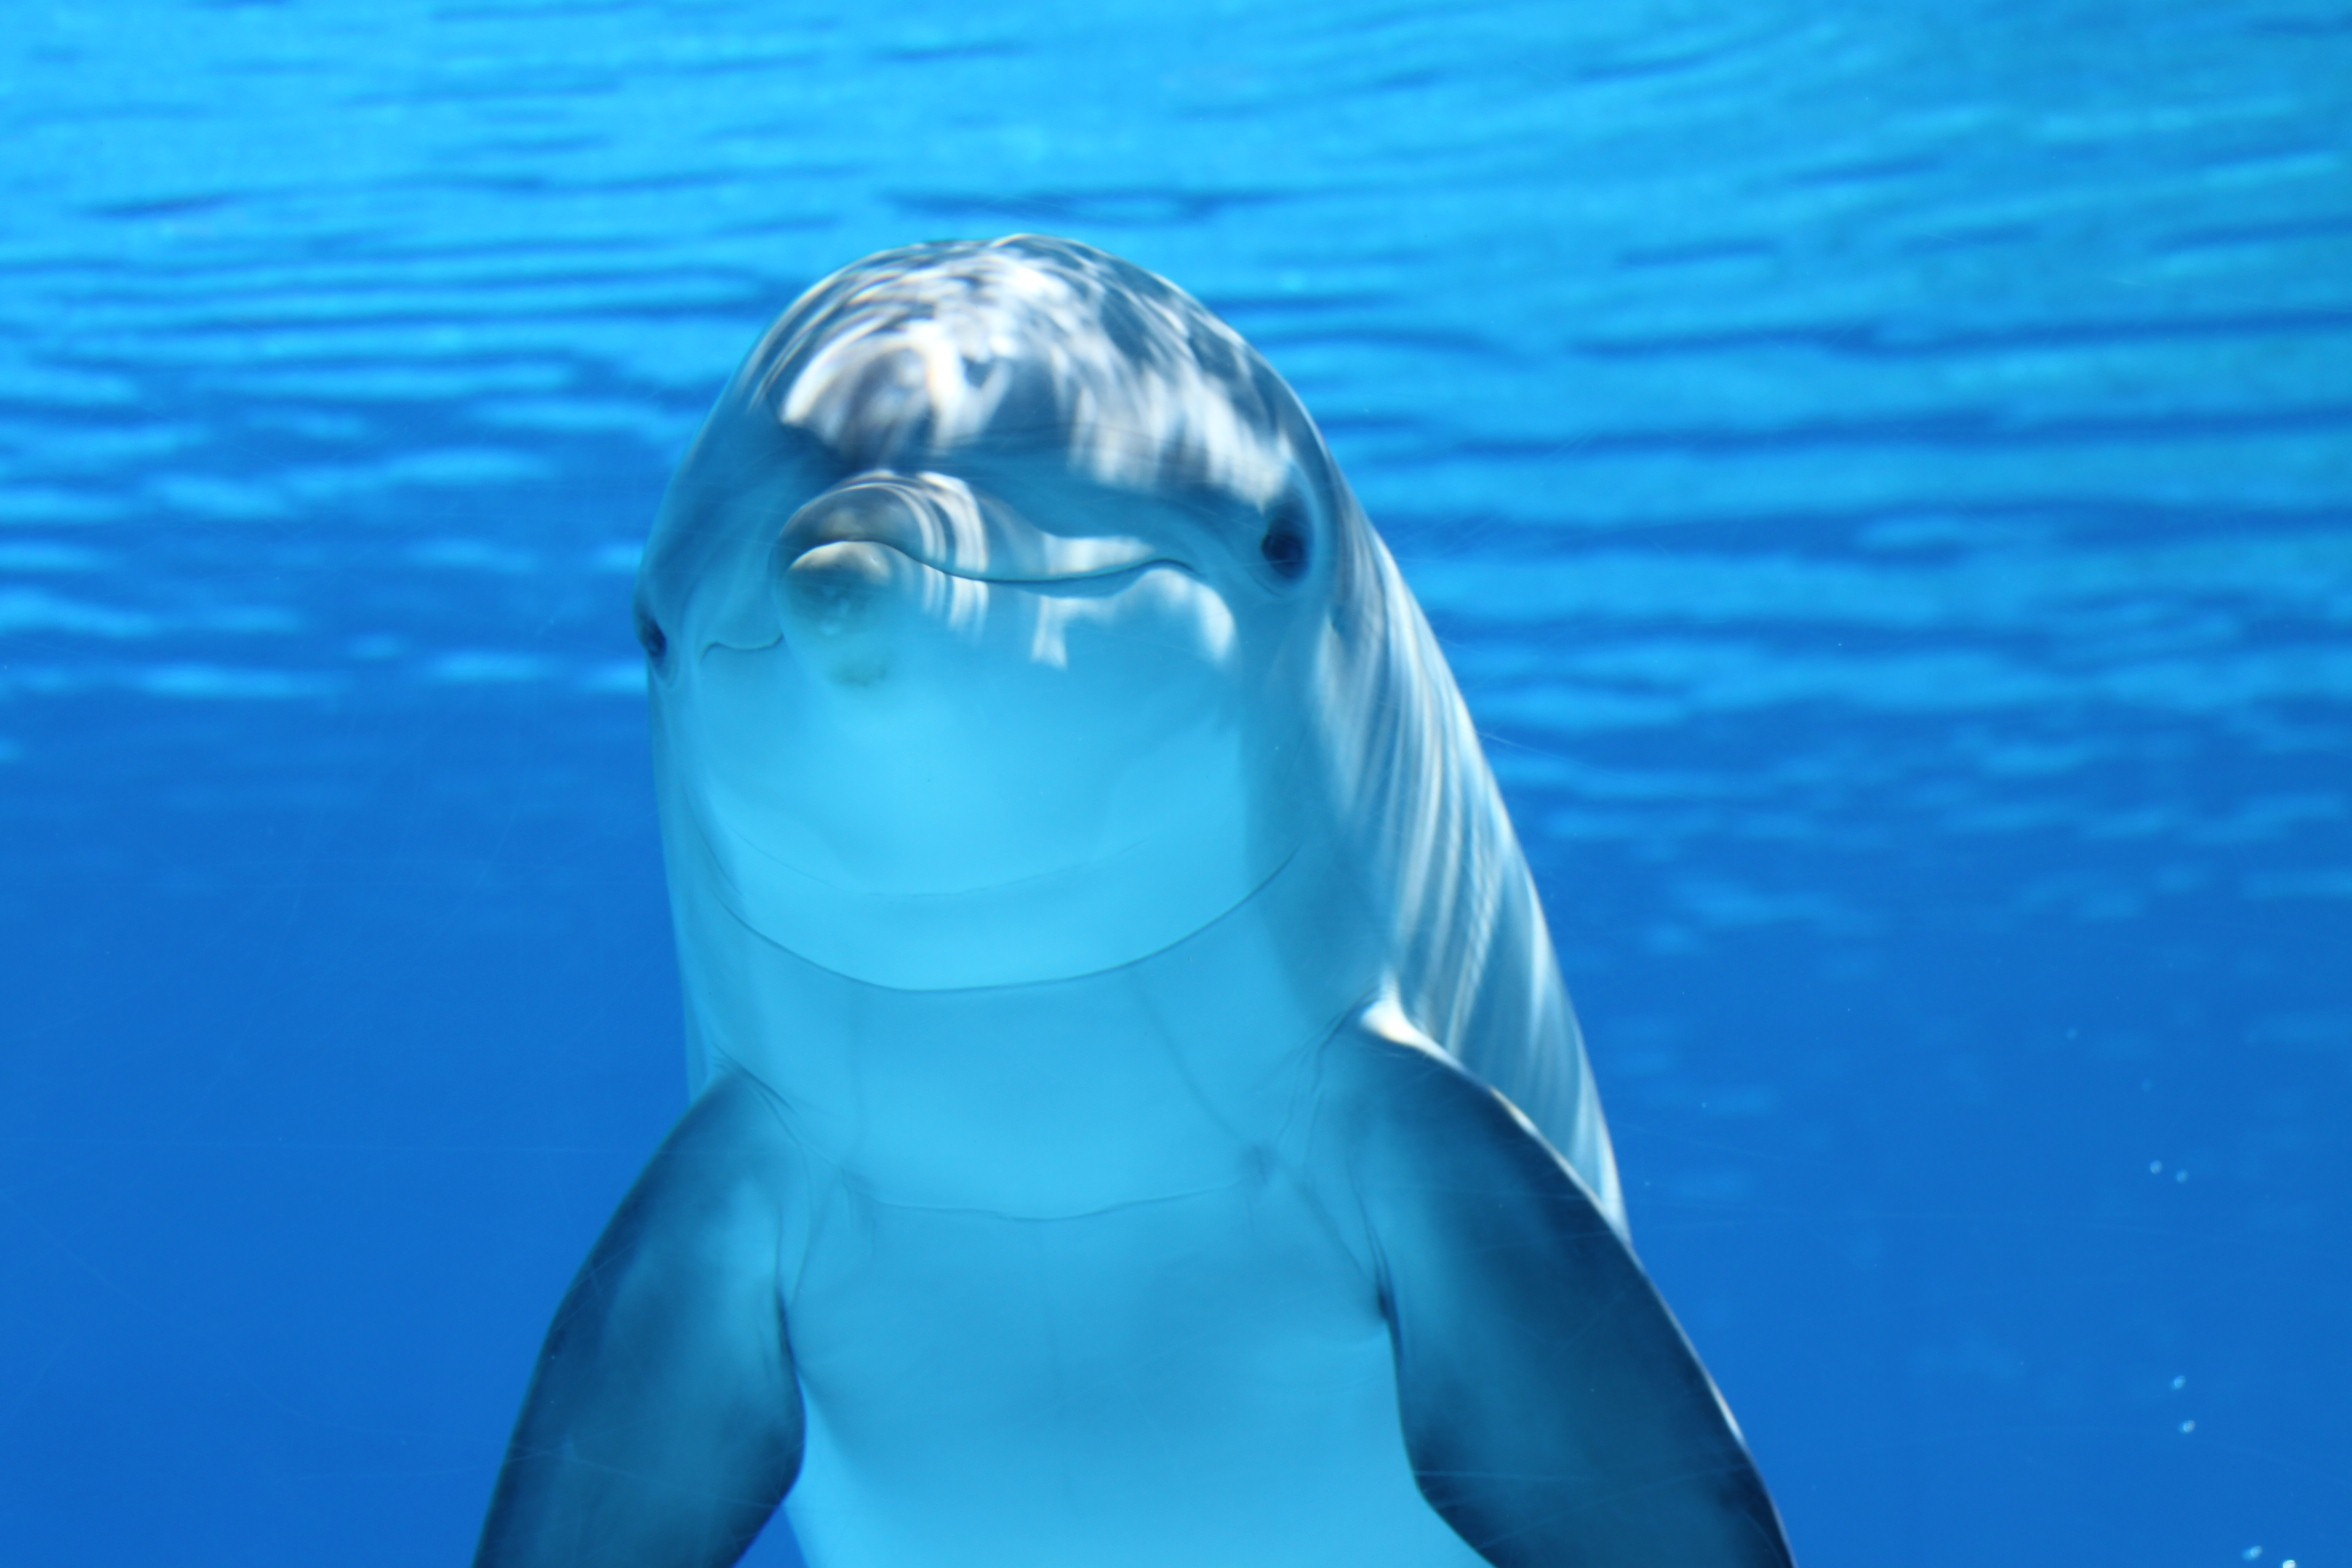 dolphin-marine-mammals-water-sea-64219.jpeg